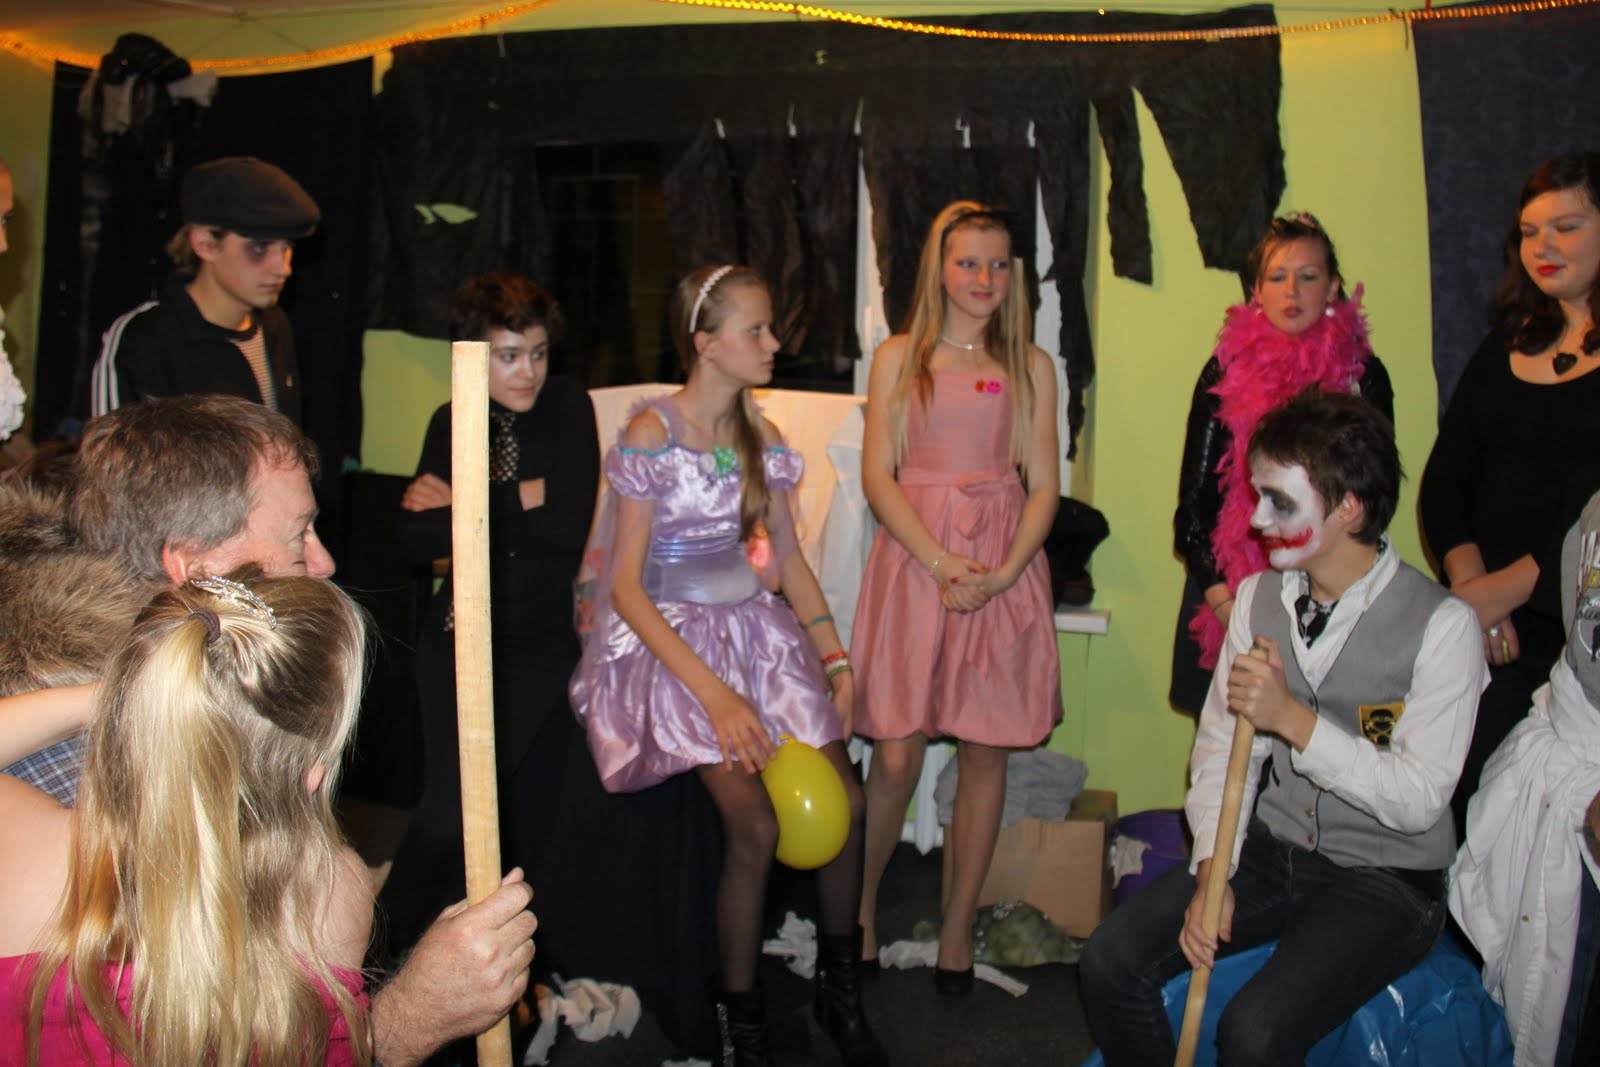 Teen Halloween Party Images - Reverse Search